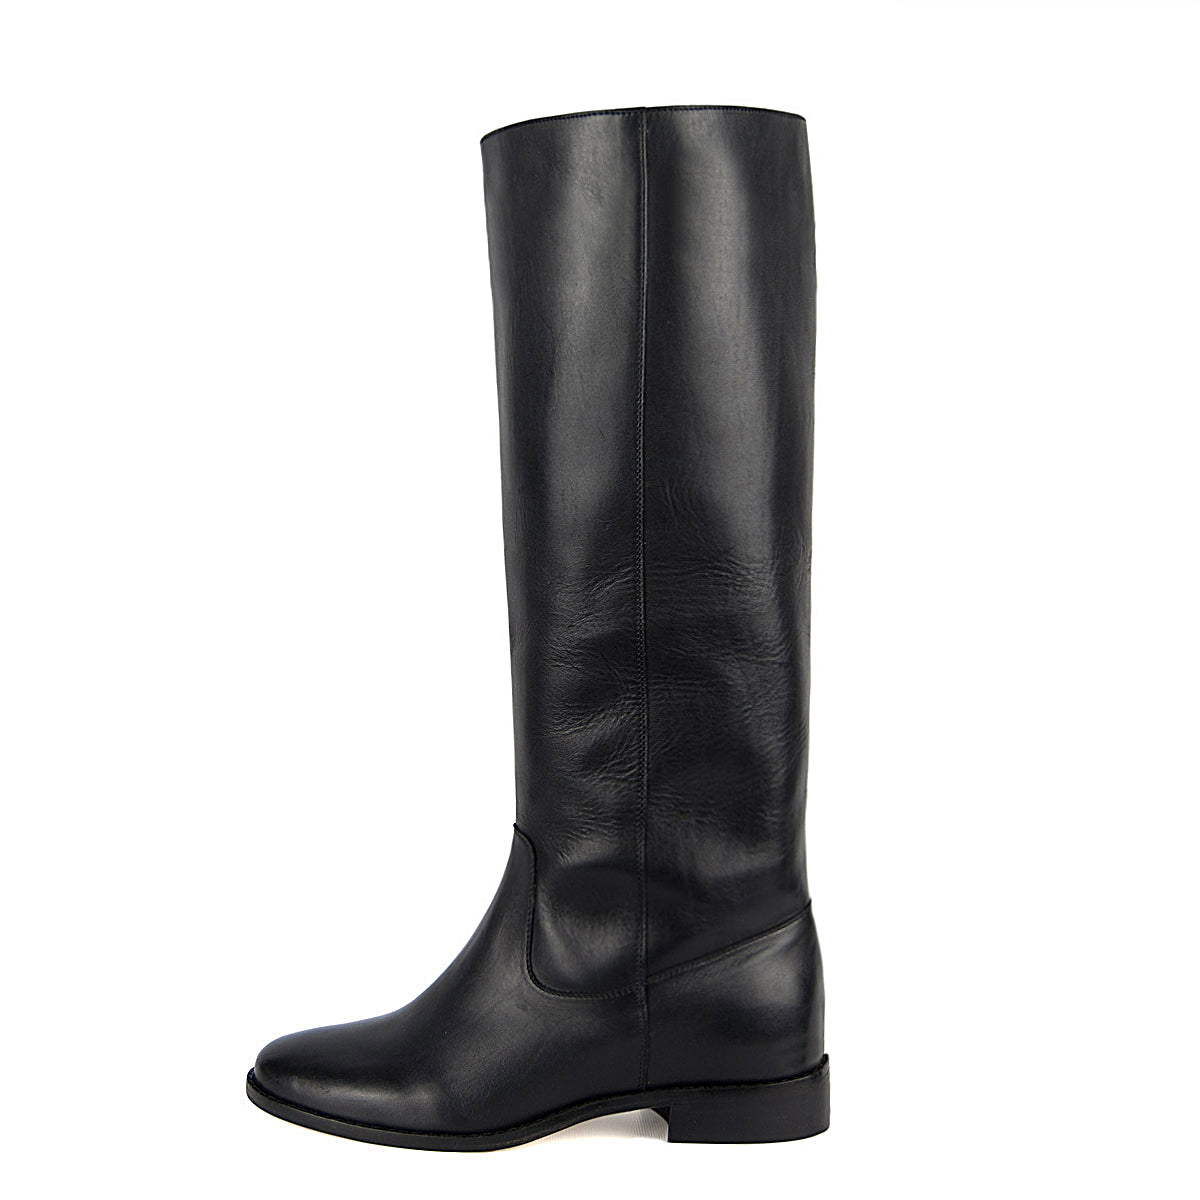 Achillea, black - wide calf boots, large fit boots, calf fitting boots, narrow calf boots